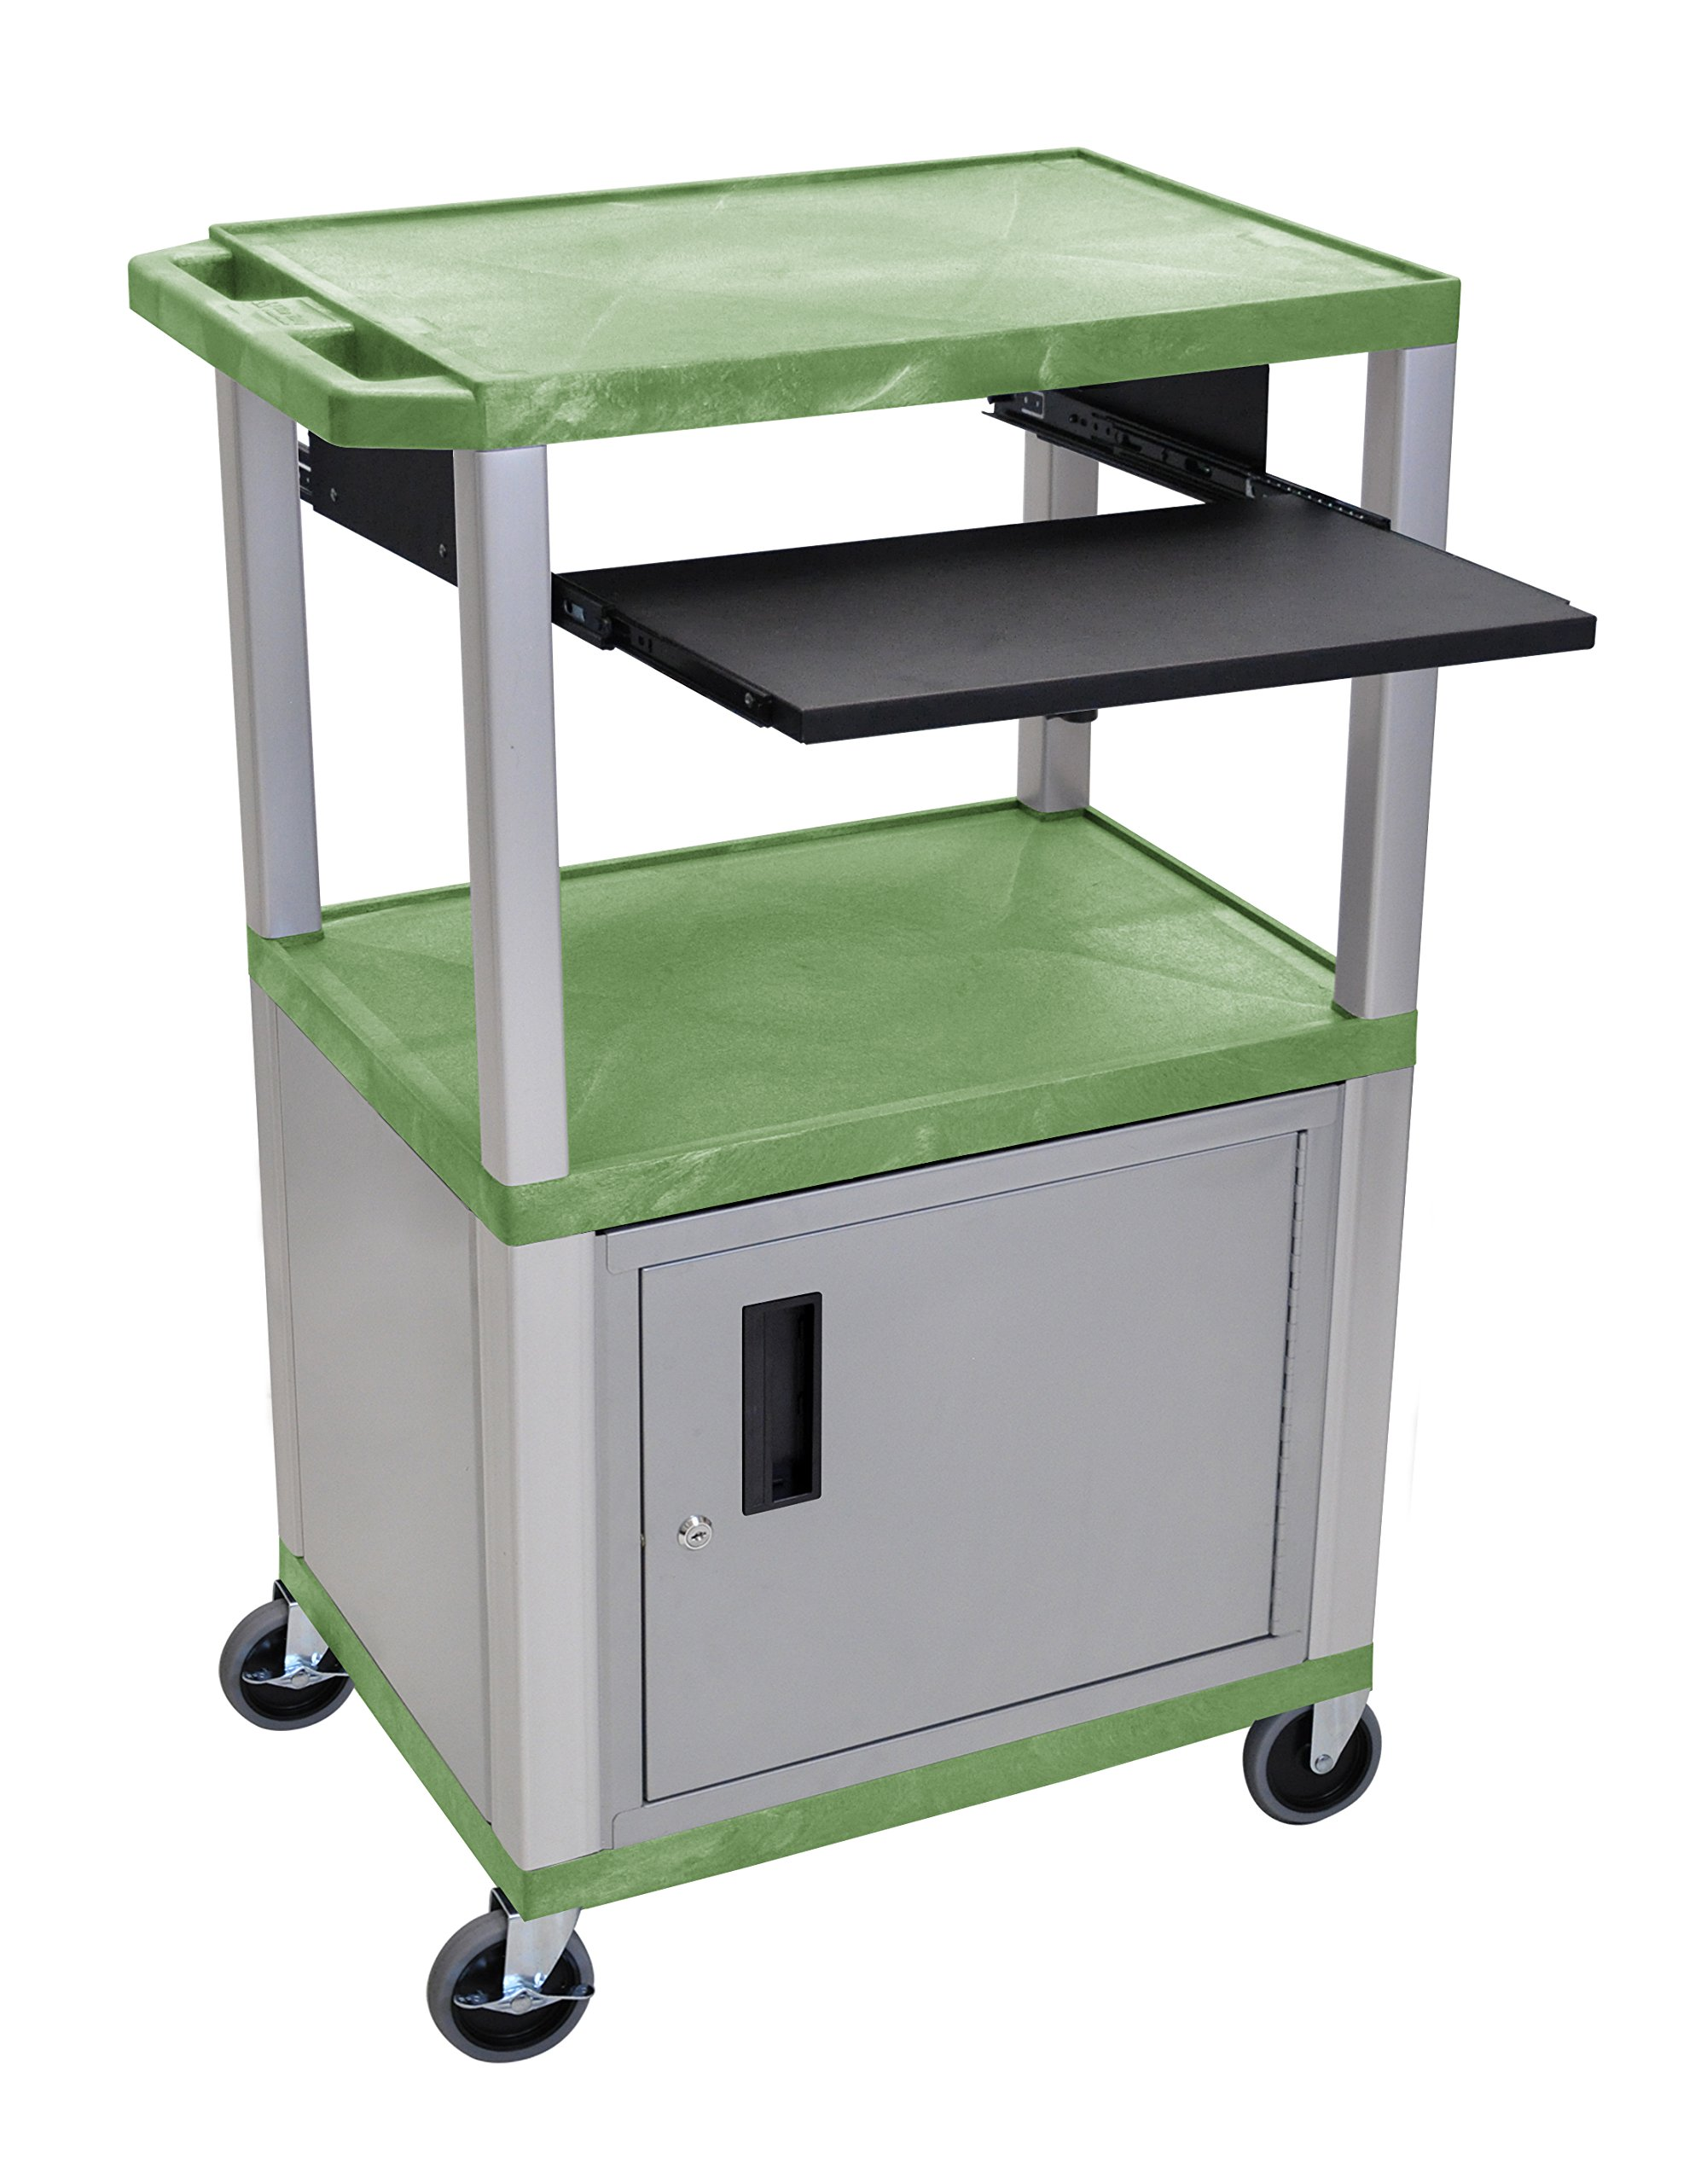 H WILSON WTPS42GC4E-N 3-Shelf Cart with Black Pullout Shelf, Nickel Cabinet and Legs, Tuffy, 42'', Green by H Wilson